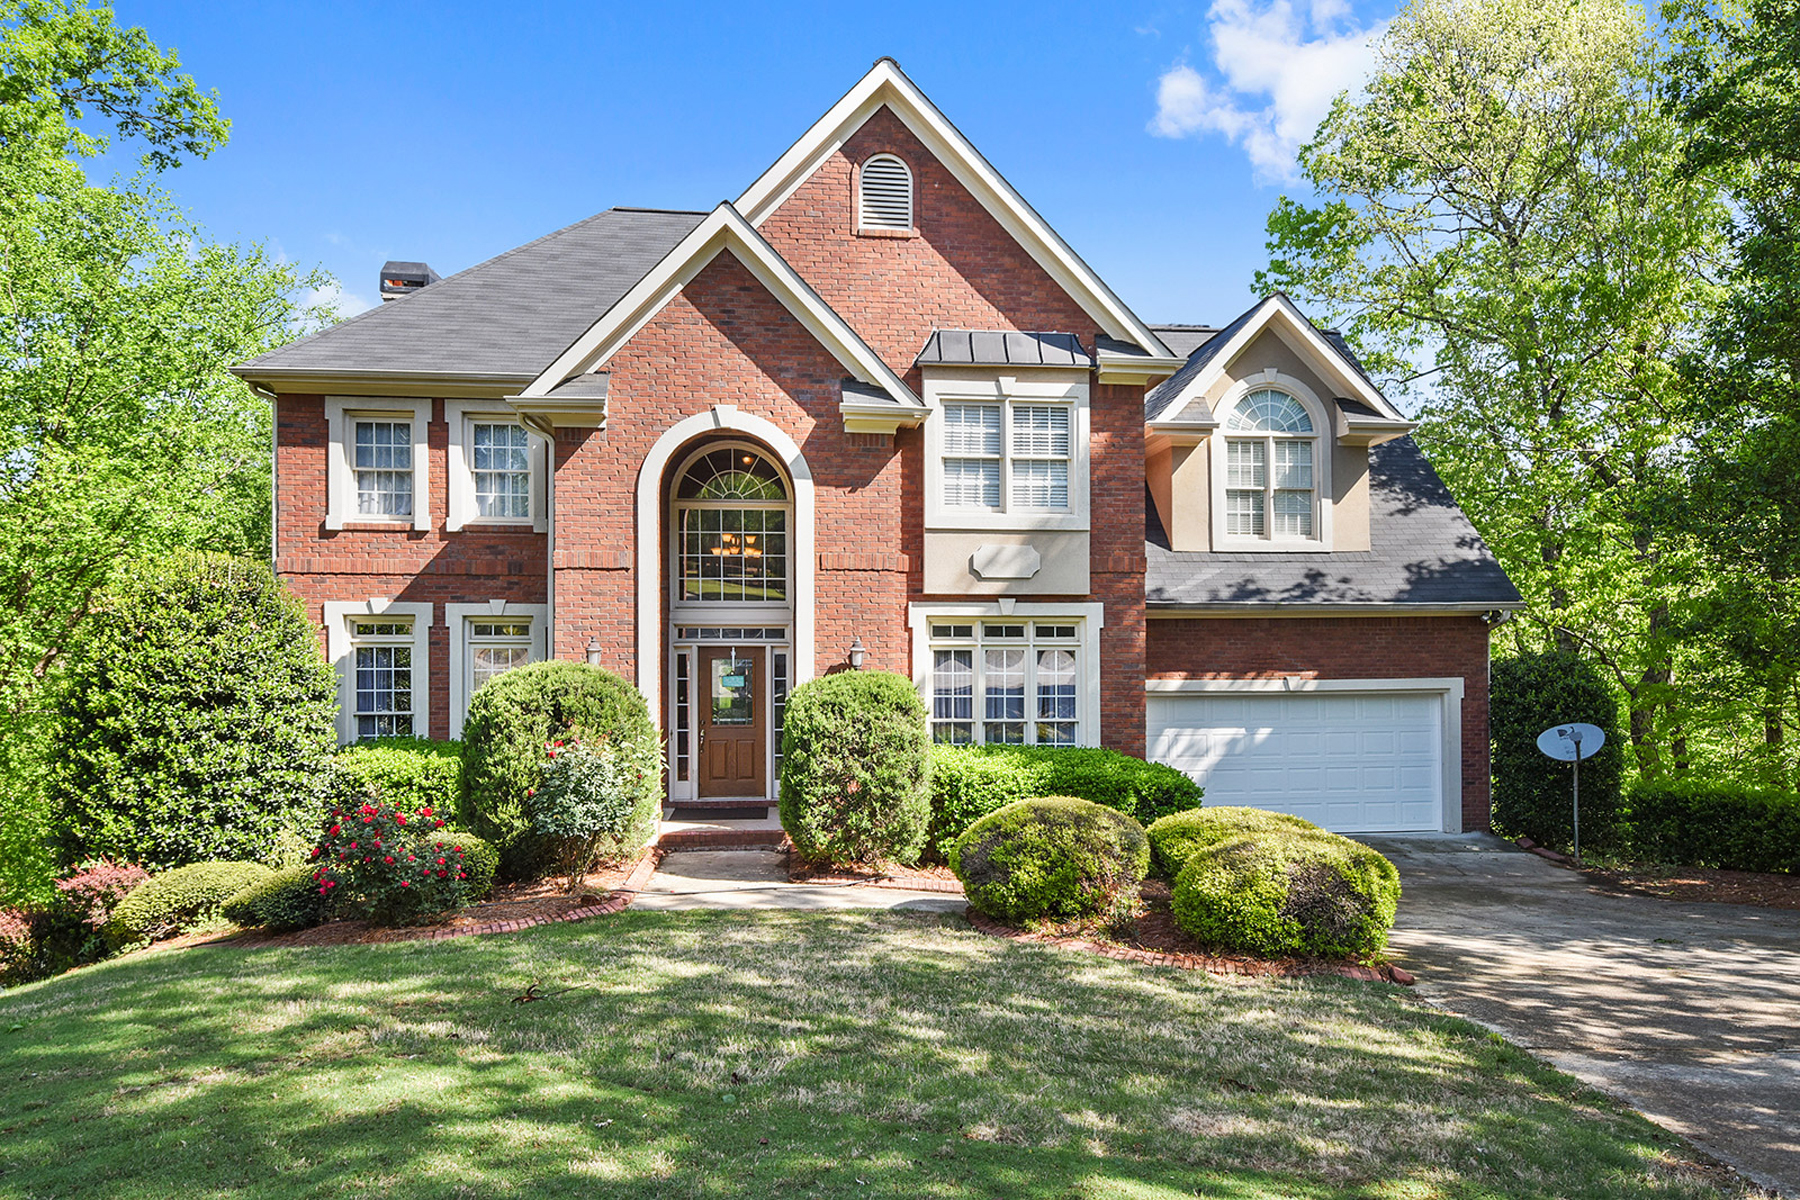 Single Family Home for Sale at Great Opportunity In Chapel Hills Country Club 4965 Winterview Ln Douglasville, Georgia 30135 United States